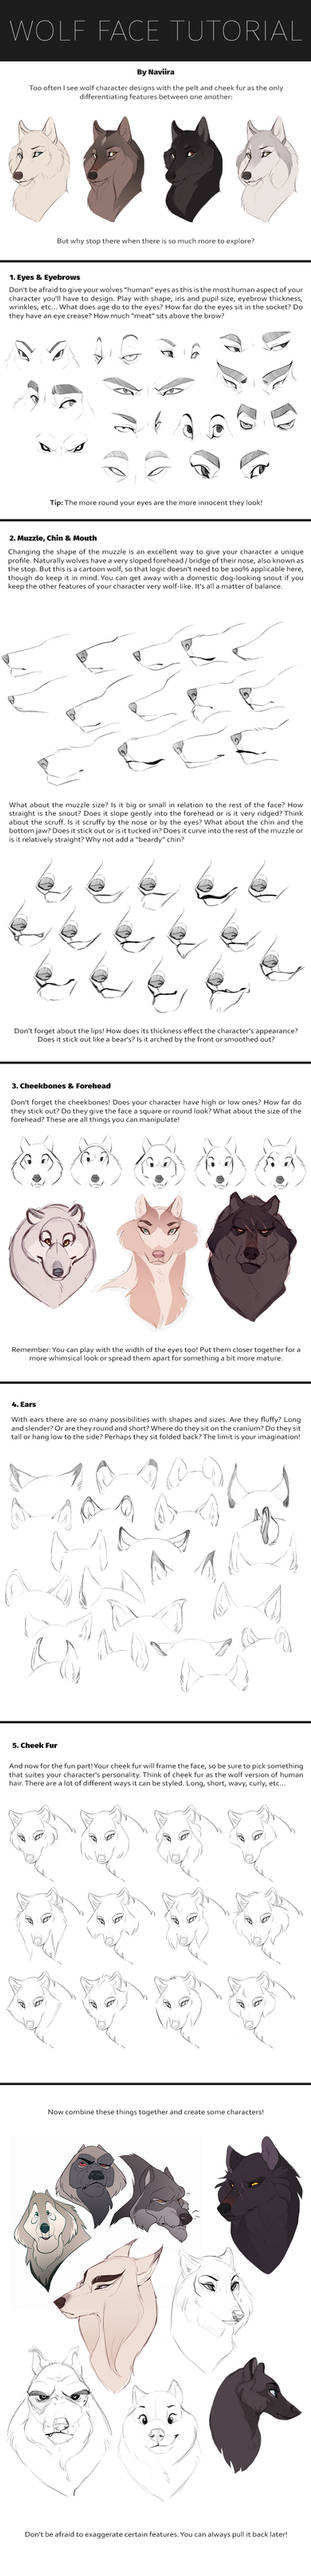 Wolf Face Tutorial